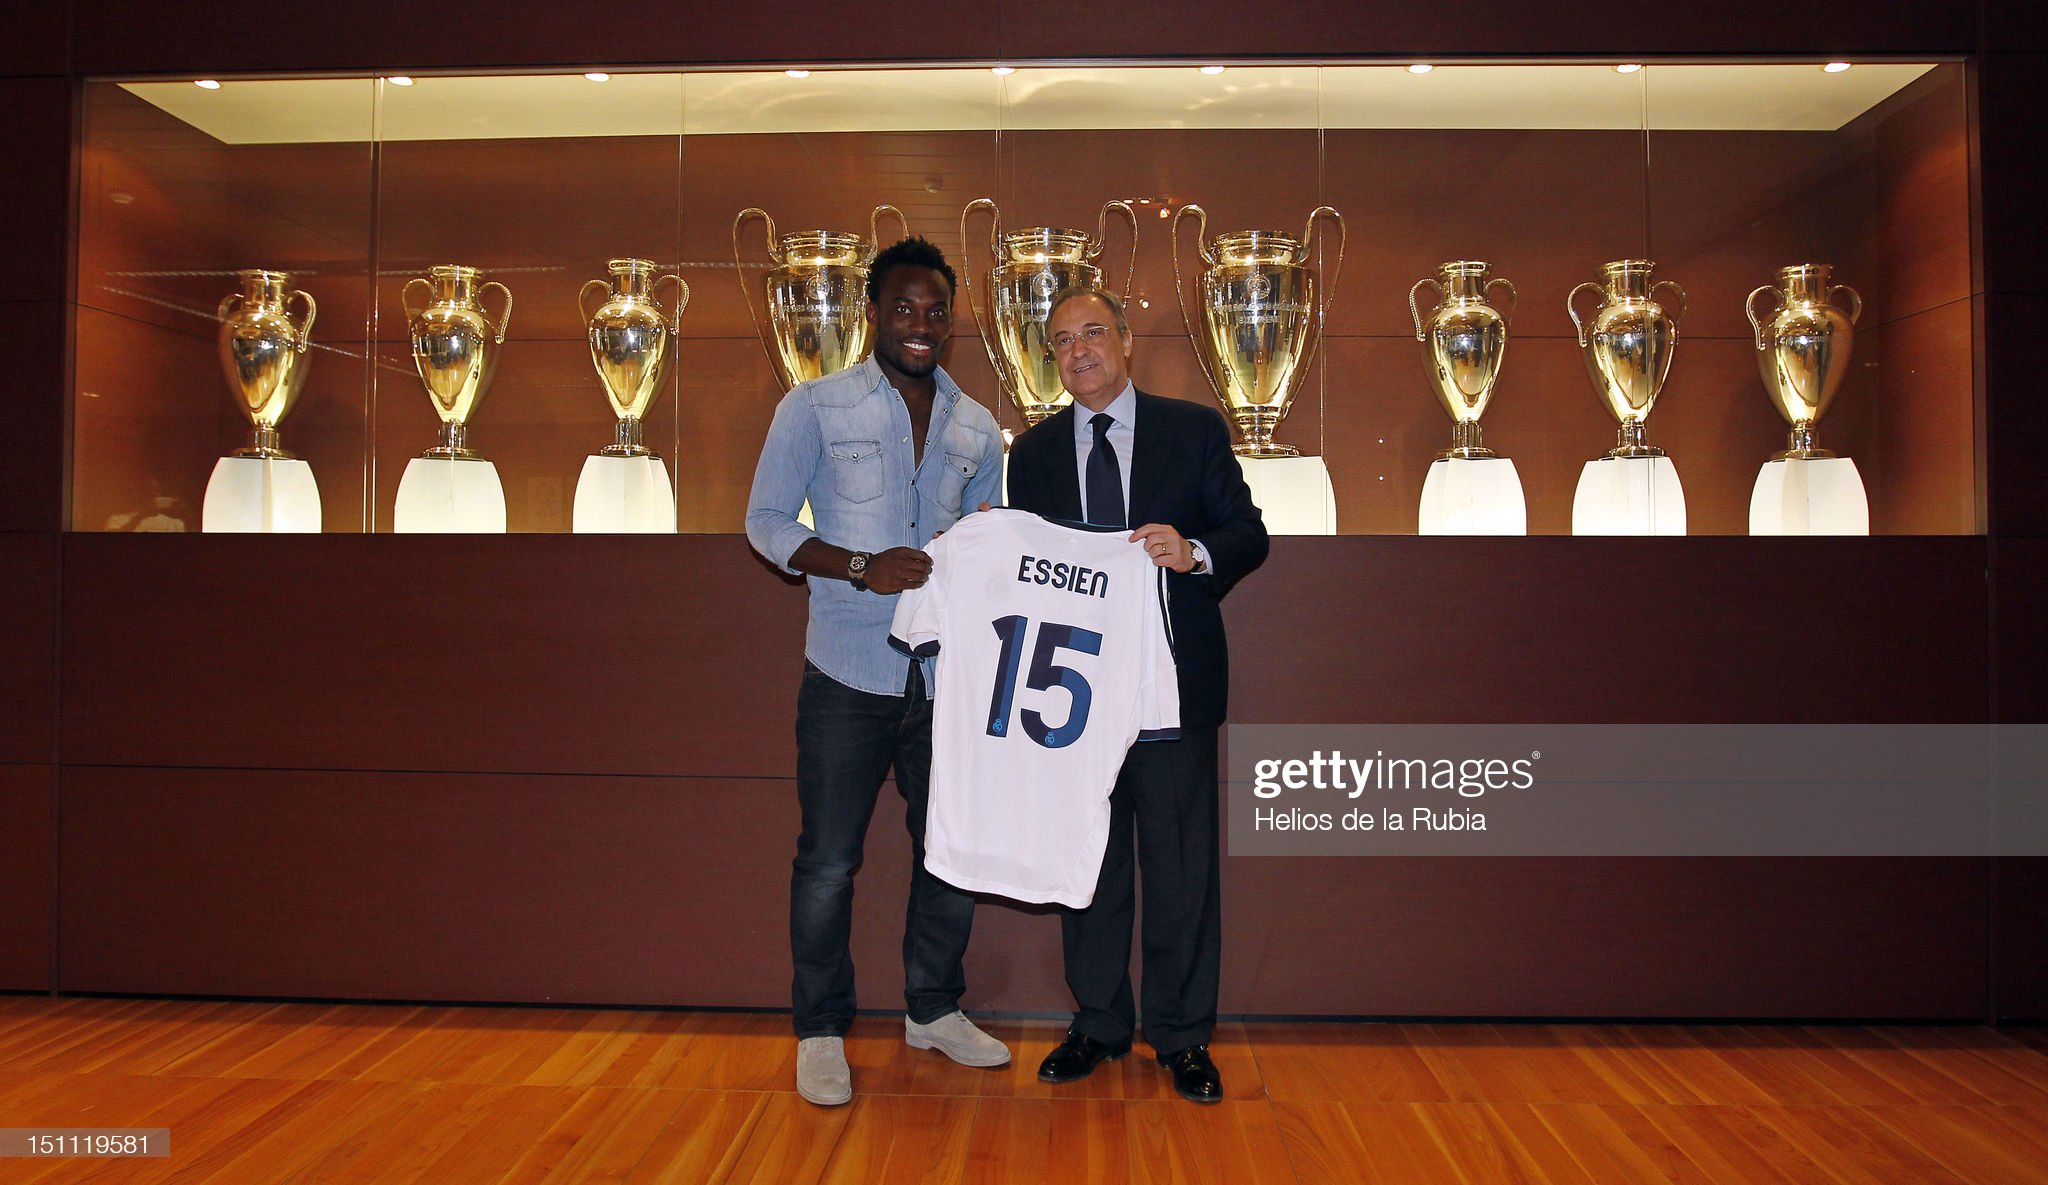 ¿Cuánto mide Michael Essien? - Real height Michael-essien-poses-with-florentino-perez-real-madrid-president-he-picture-id151119581?s=2048x2048